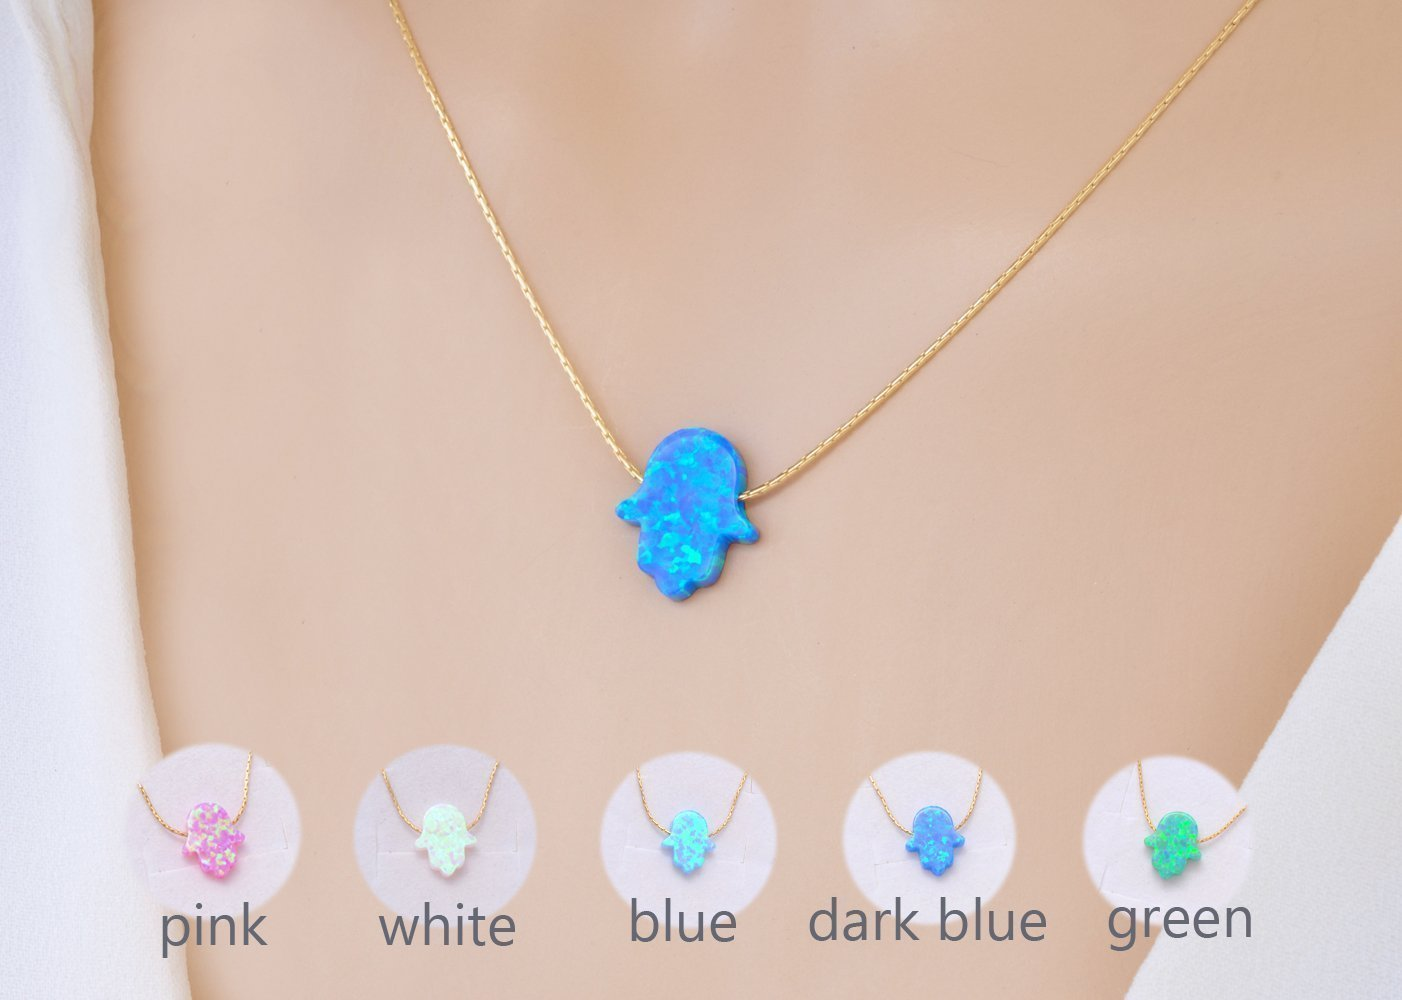 Green Opal Hamsa Hand Pendant Necklace with 14Kt Gold filled Chain